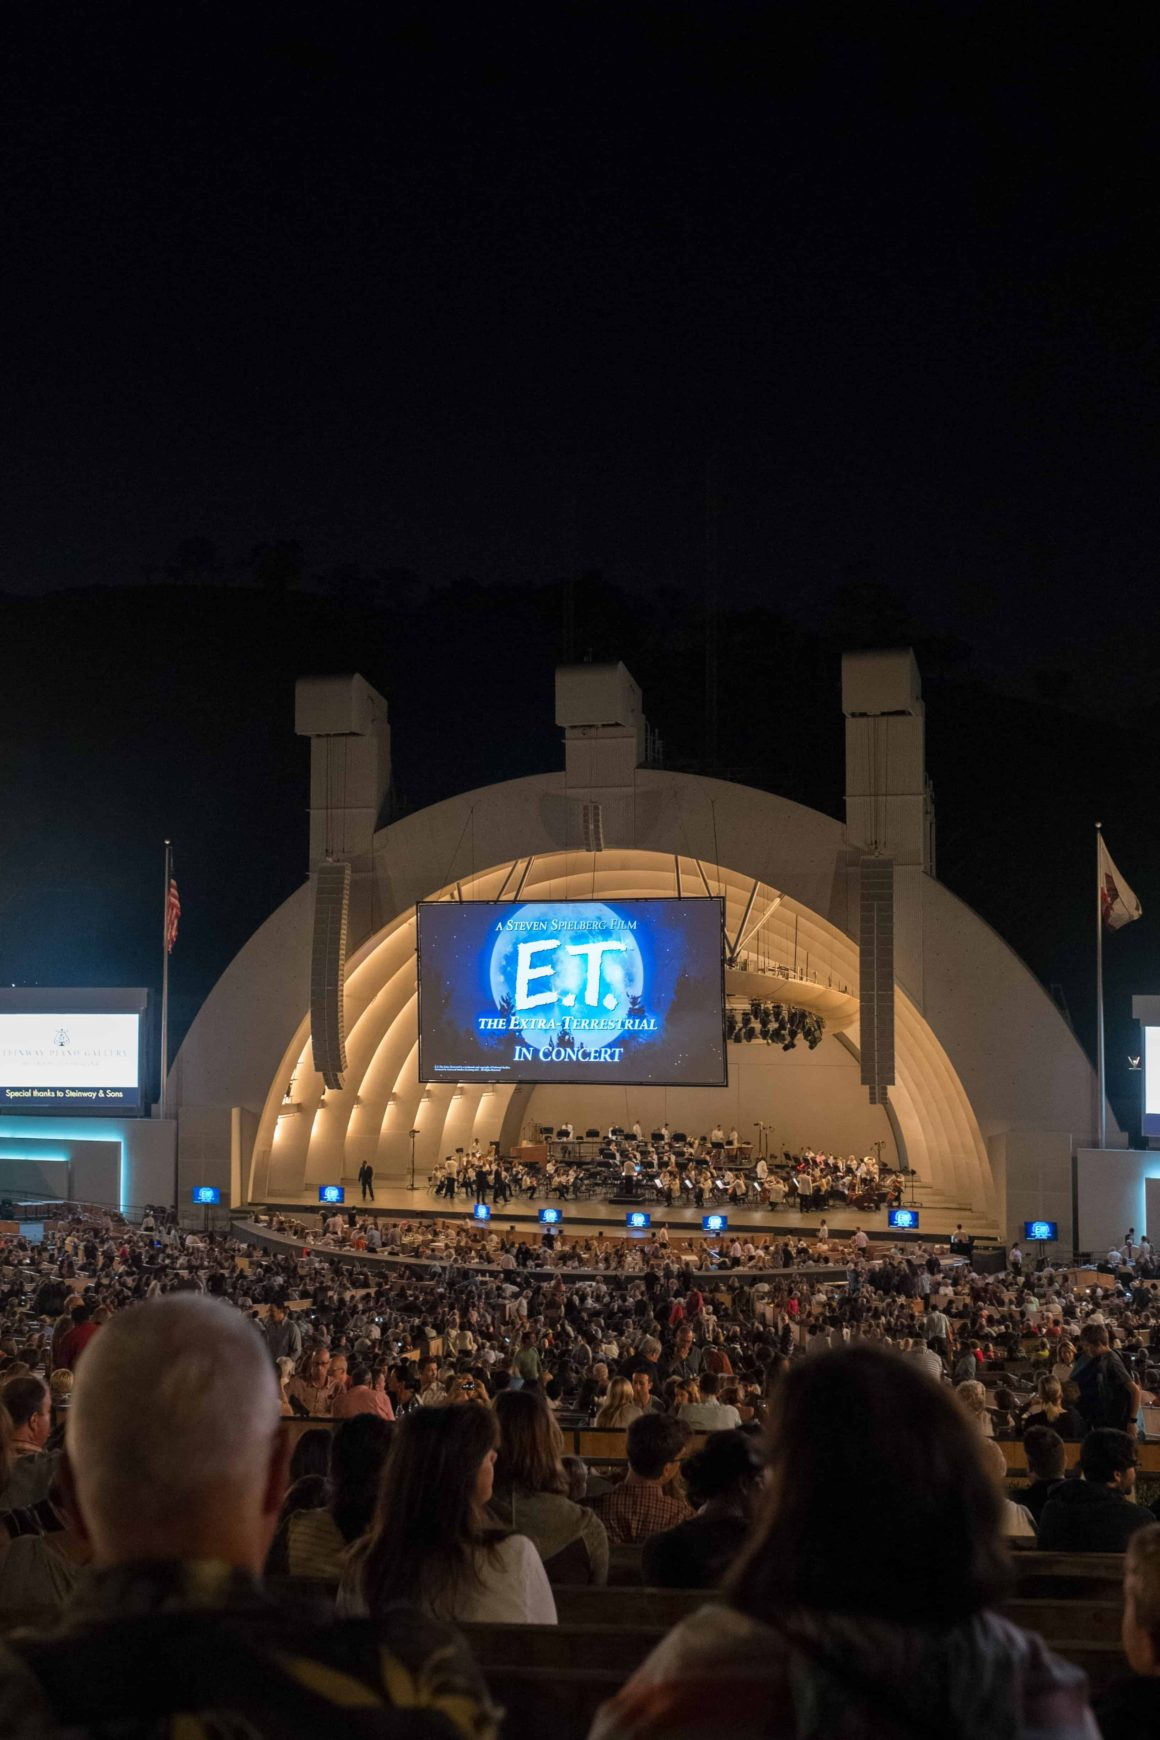 Week No. 14 | E.T. In Concert at The Hollywood Bowl